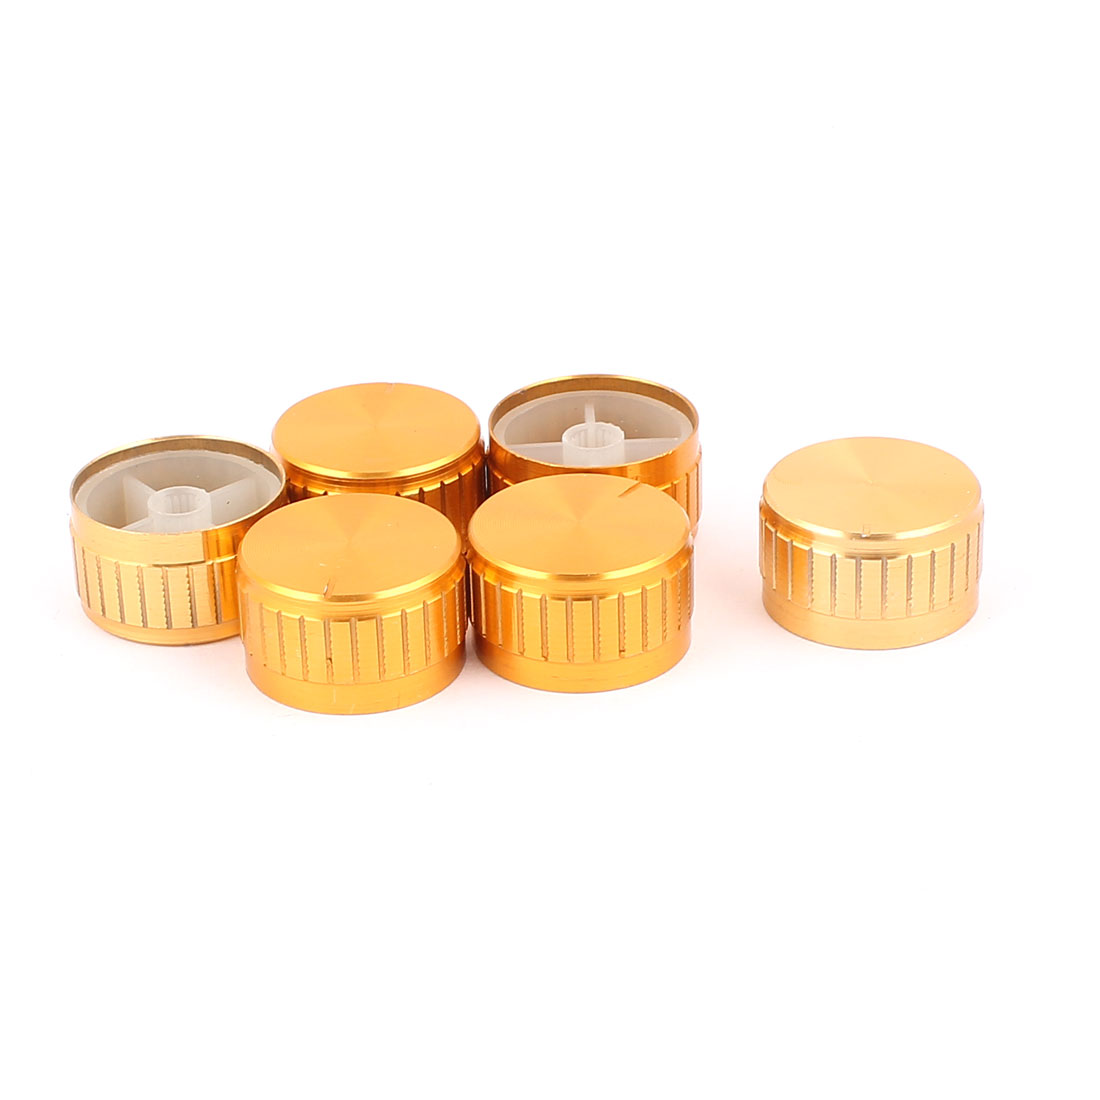 6 Pcs 30mm x 6mm Aluminium Alloy Potentiometer Control Switch Volume Cap Knurled Button Gold Tone